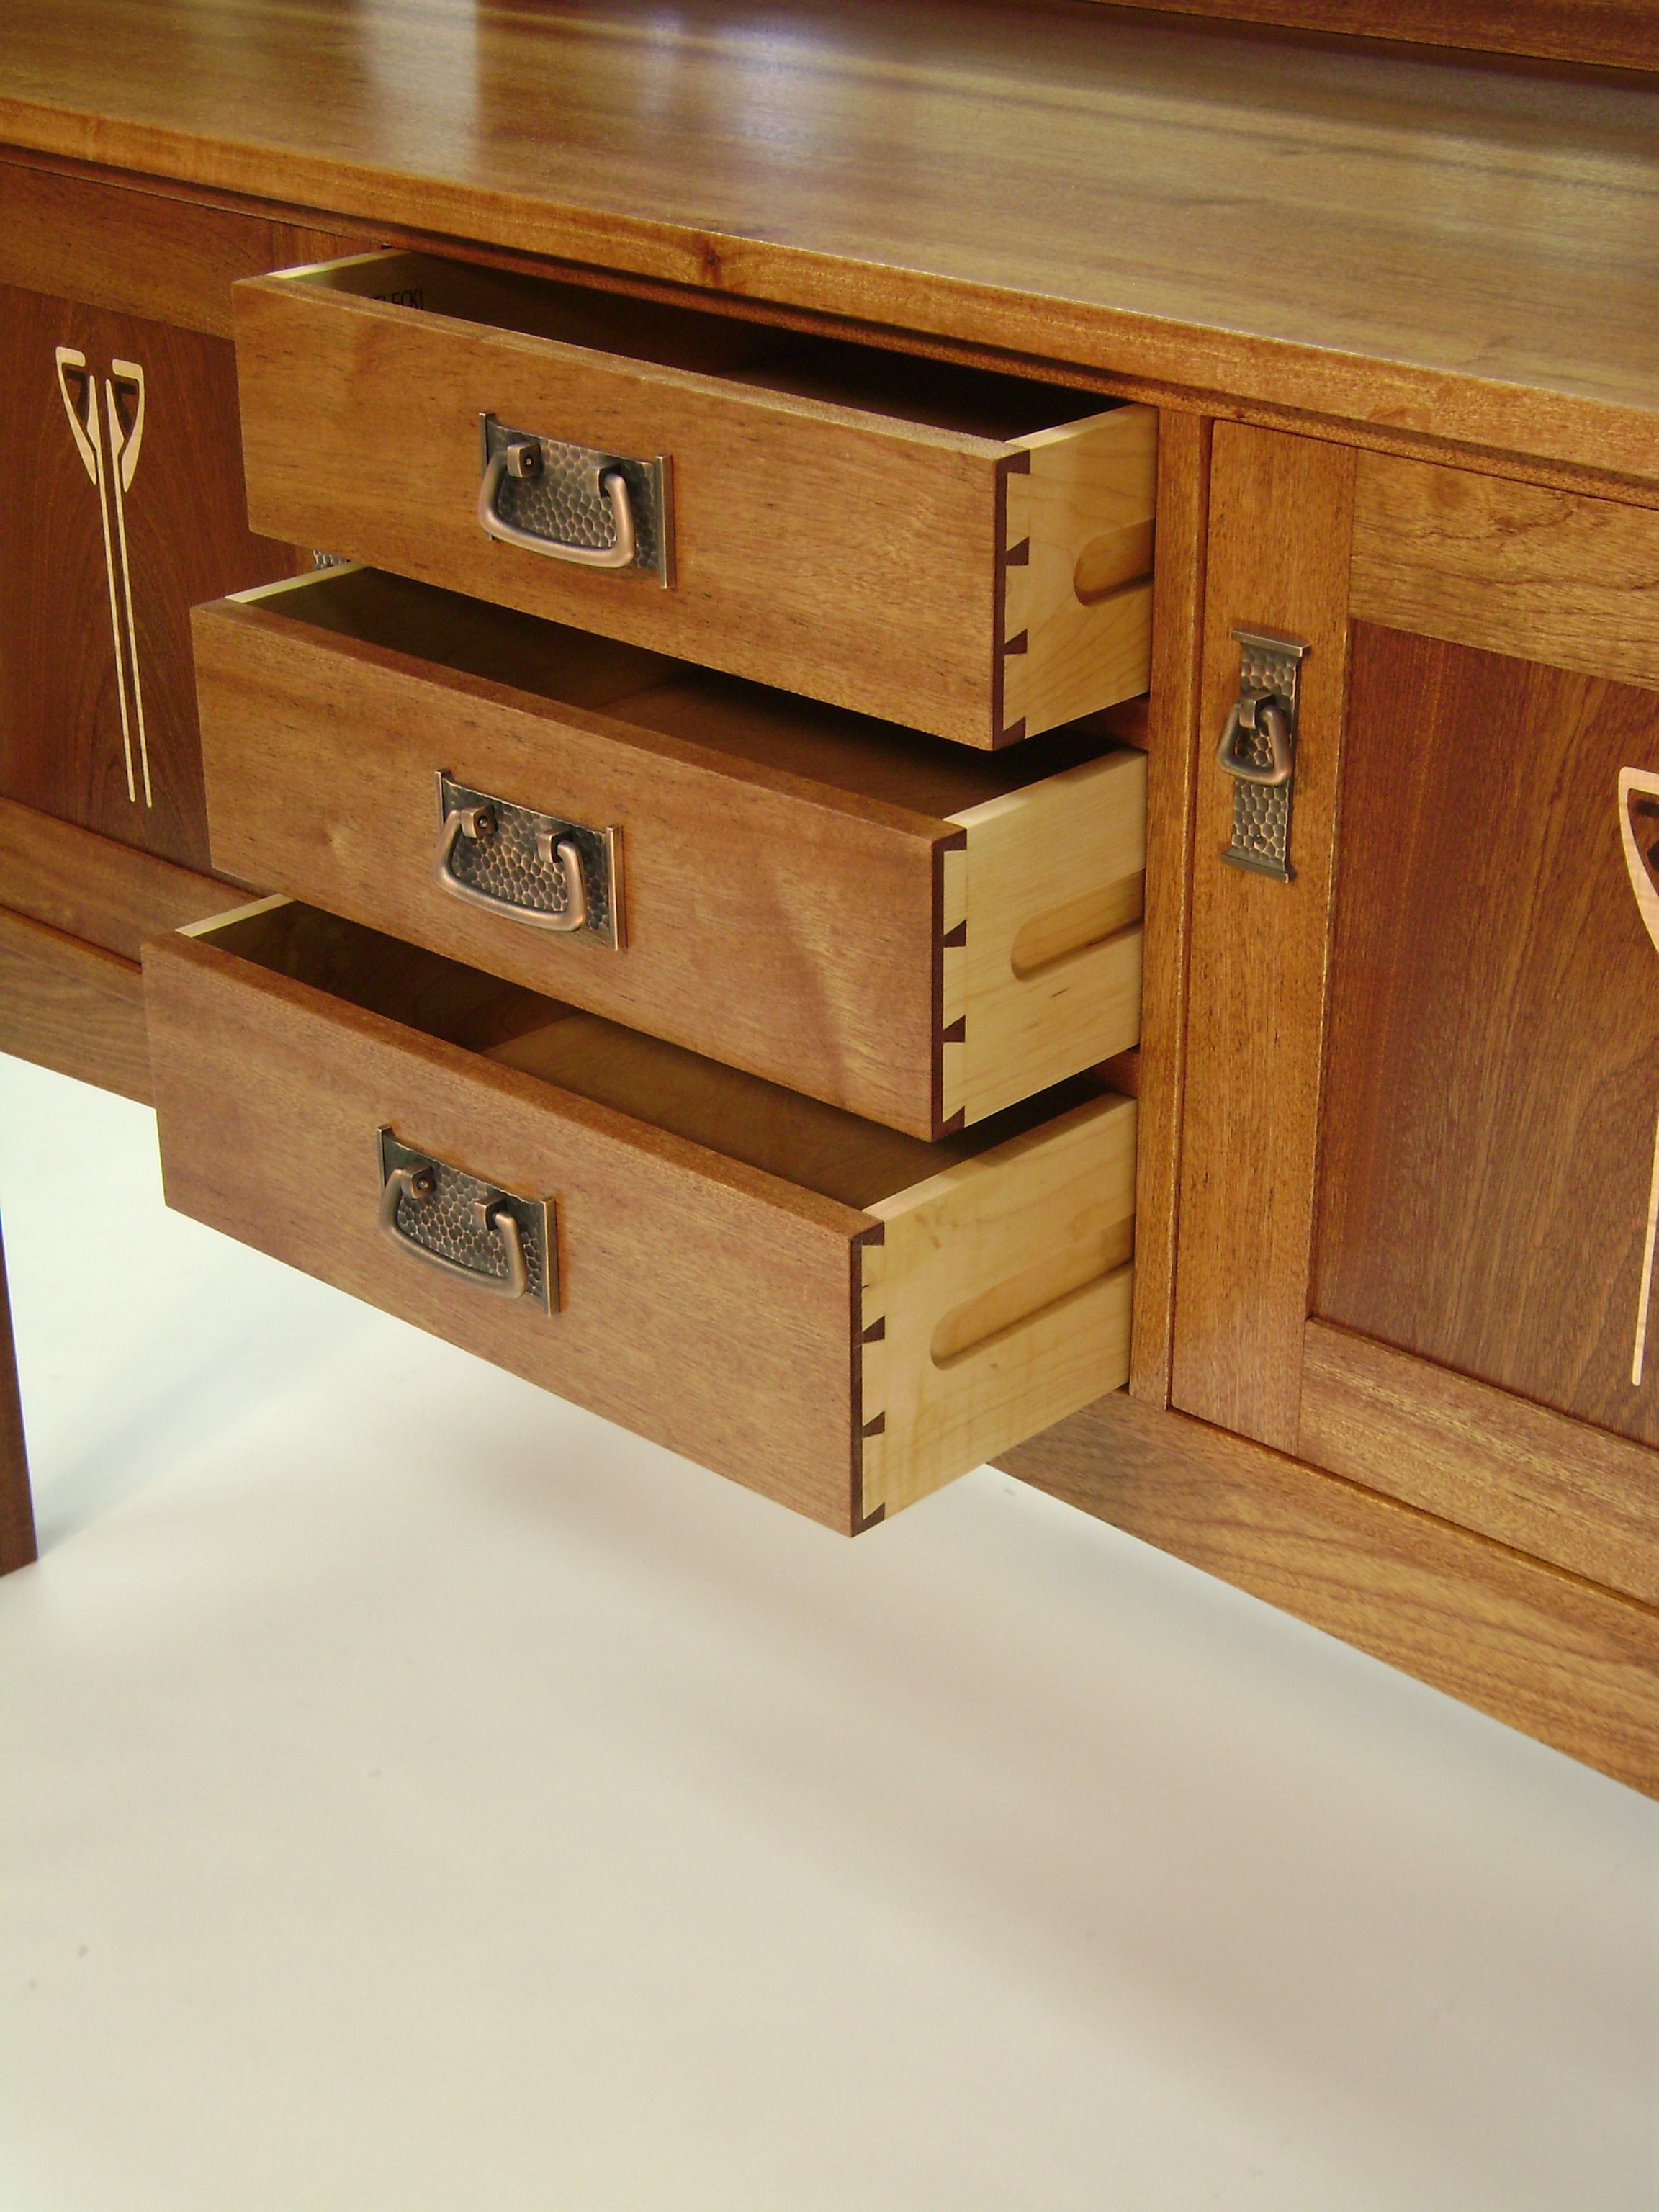 Contrasting mahogany and maple make the hand-cut dovetails pop on these drawers.